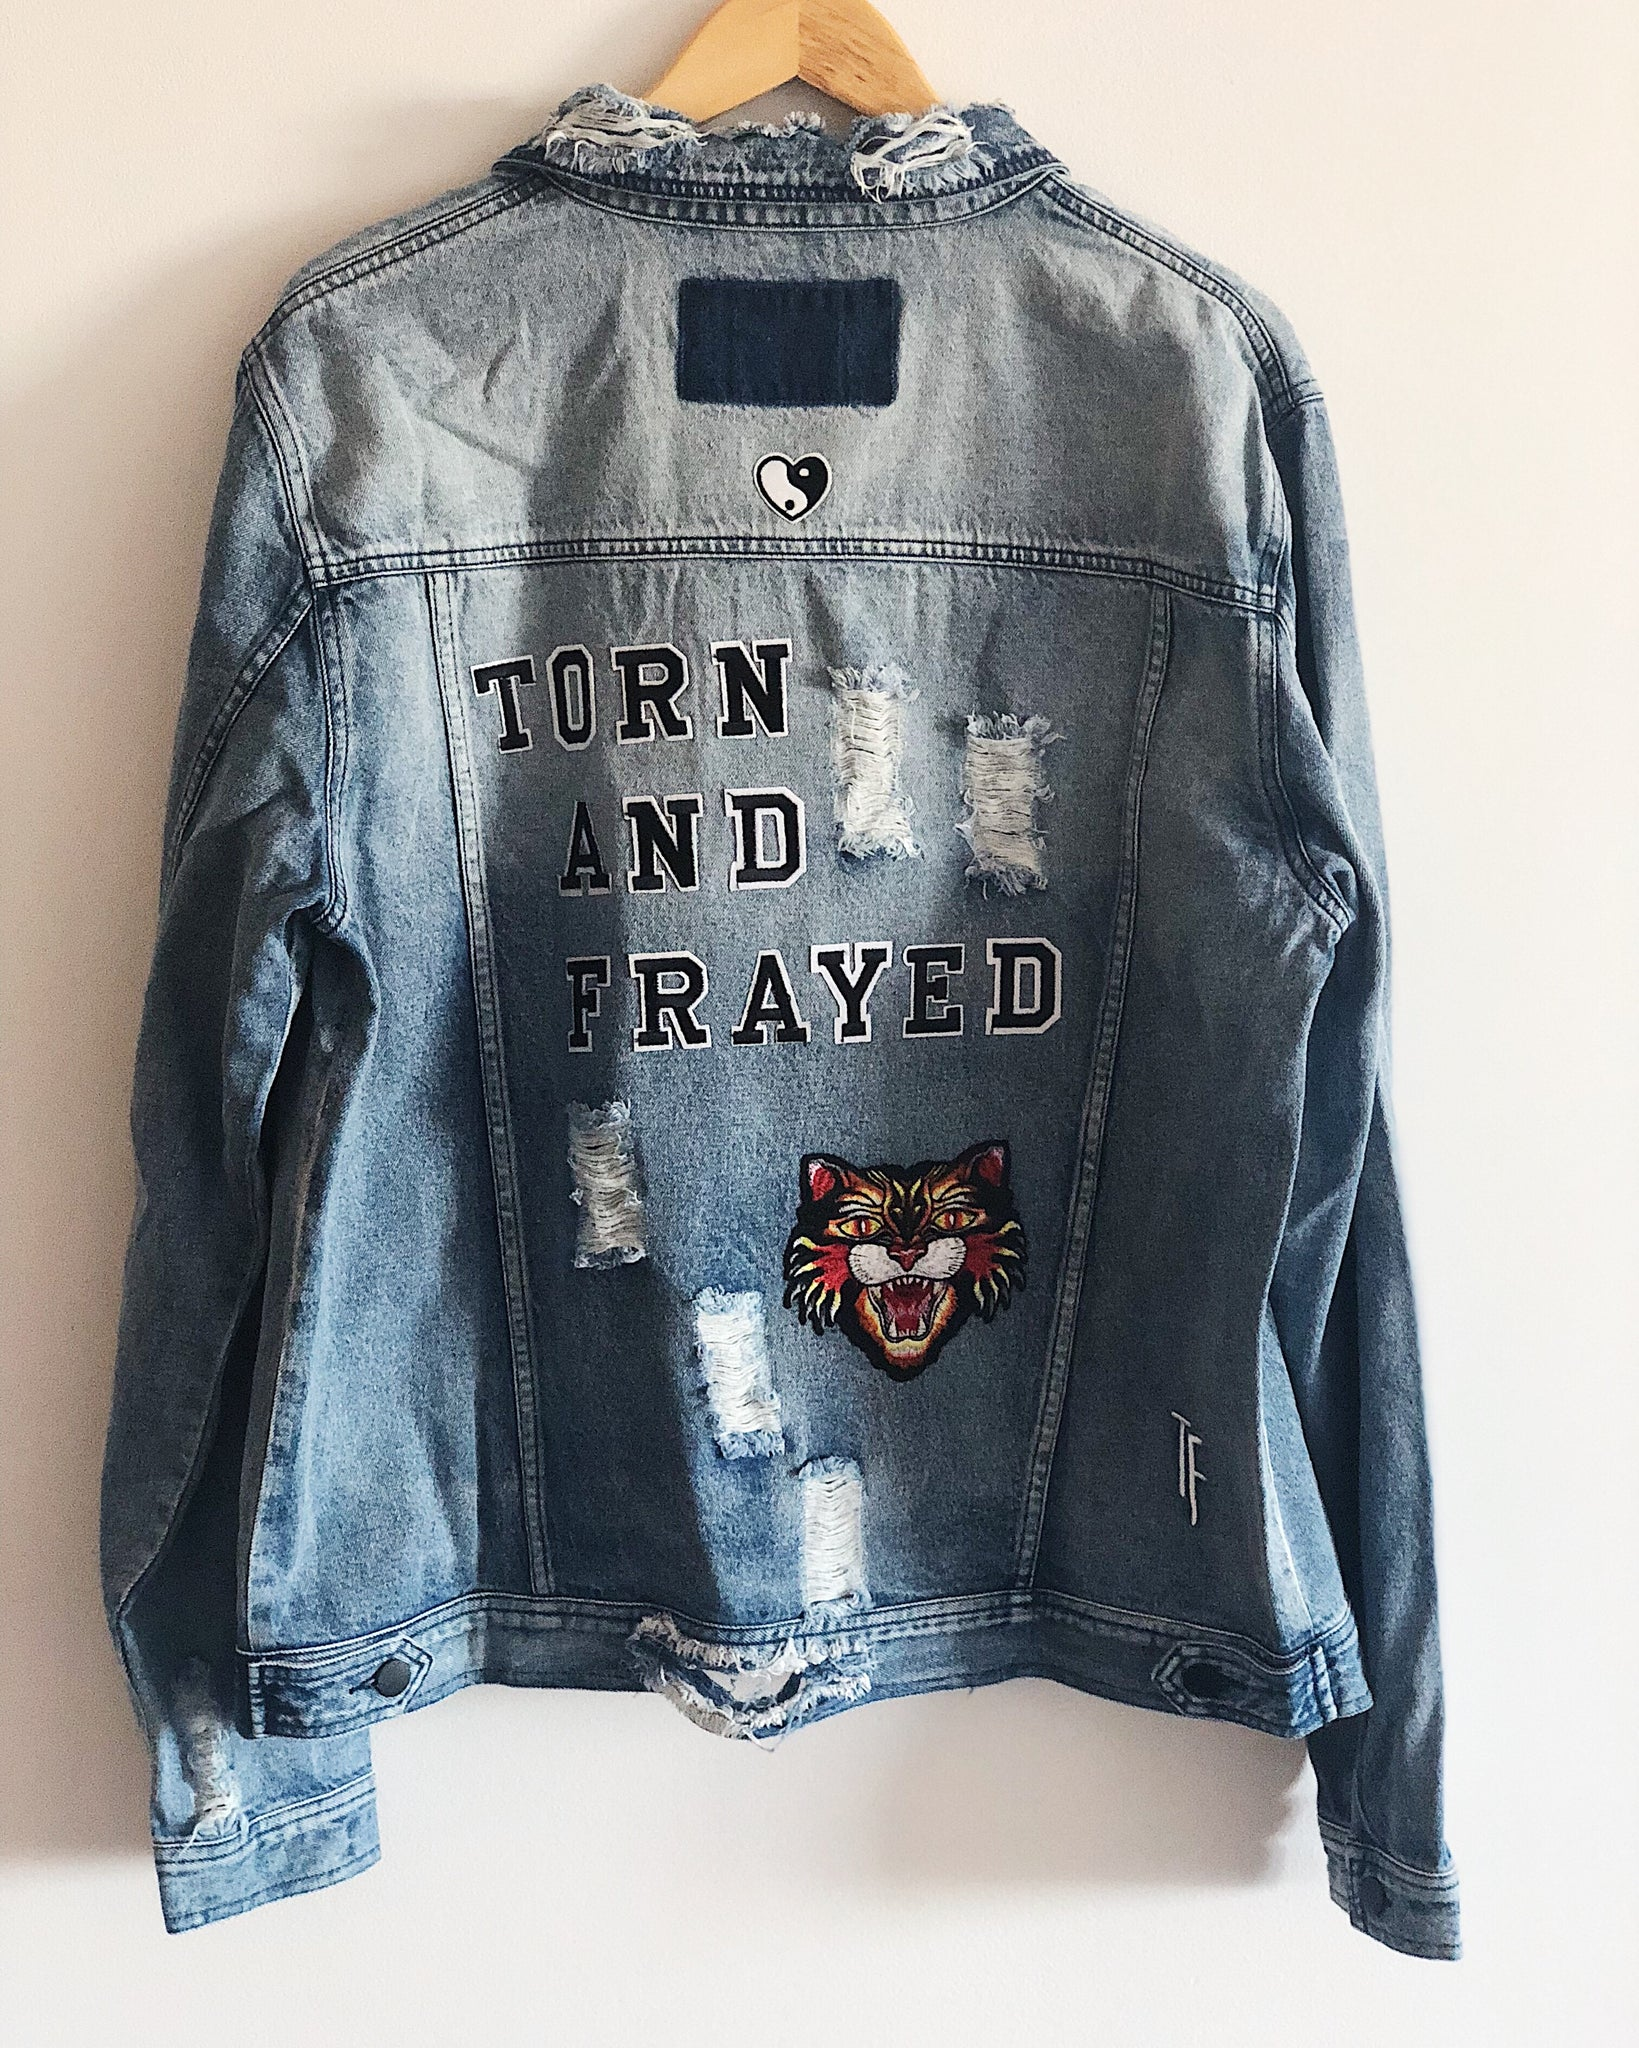 TF Letter DNIM Jacket